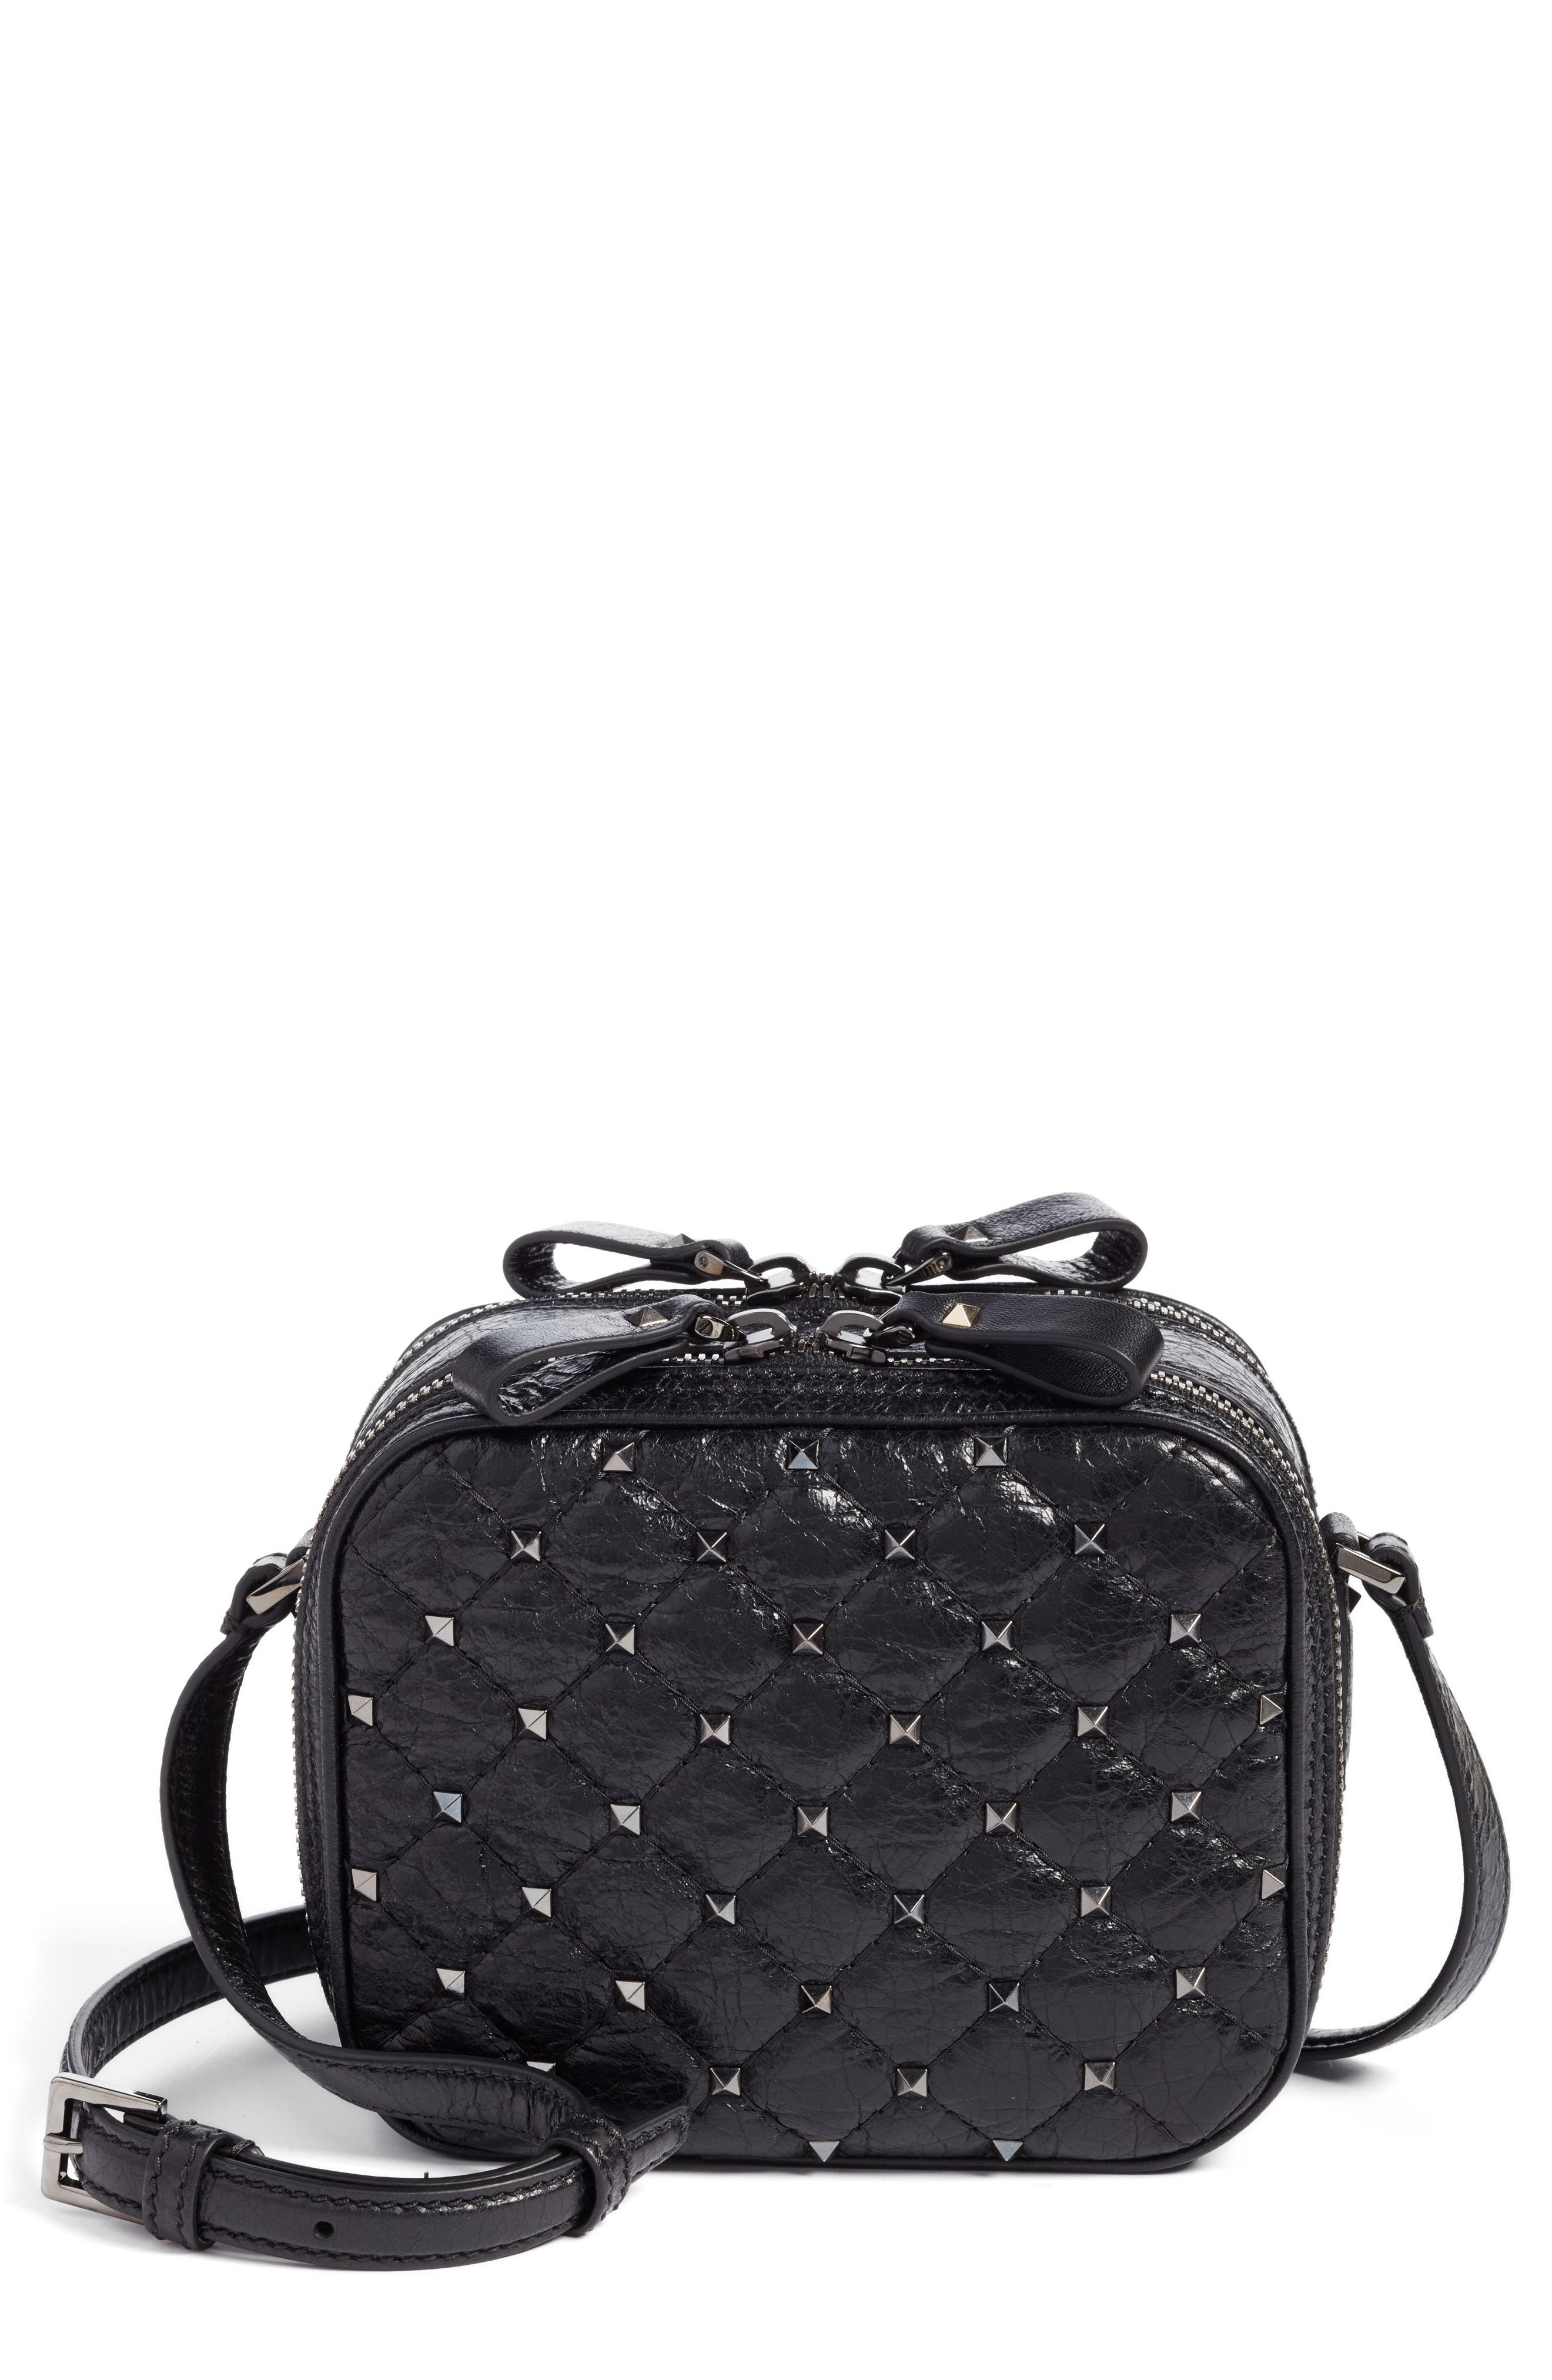 Main Image - VALENTINO GARAVANI Rockstud Leather Camera Crossbody Bag